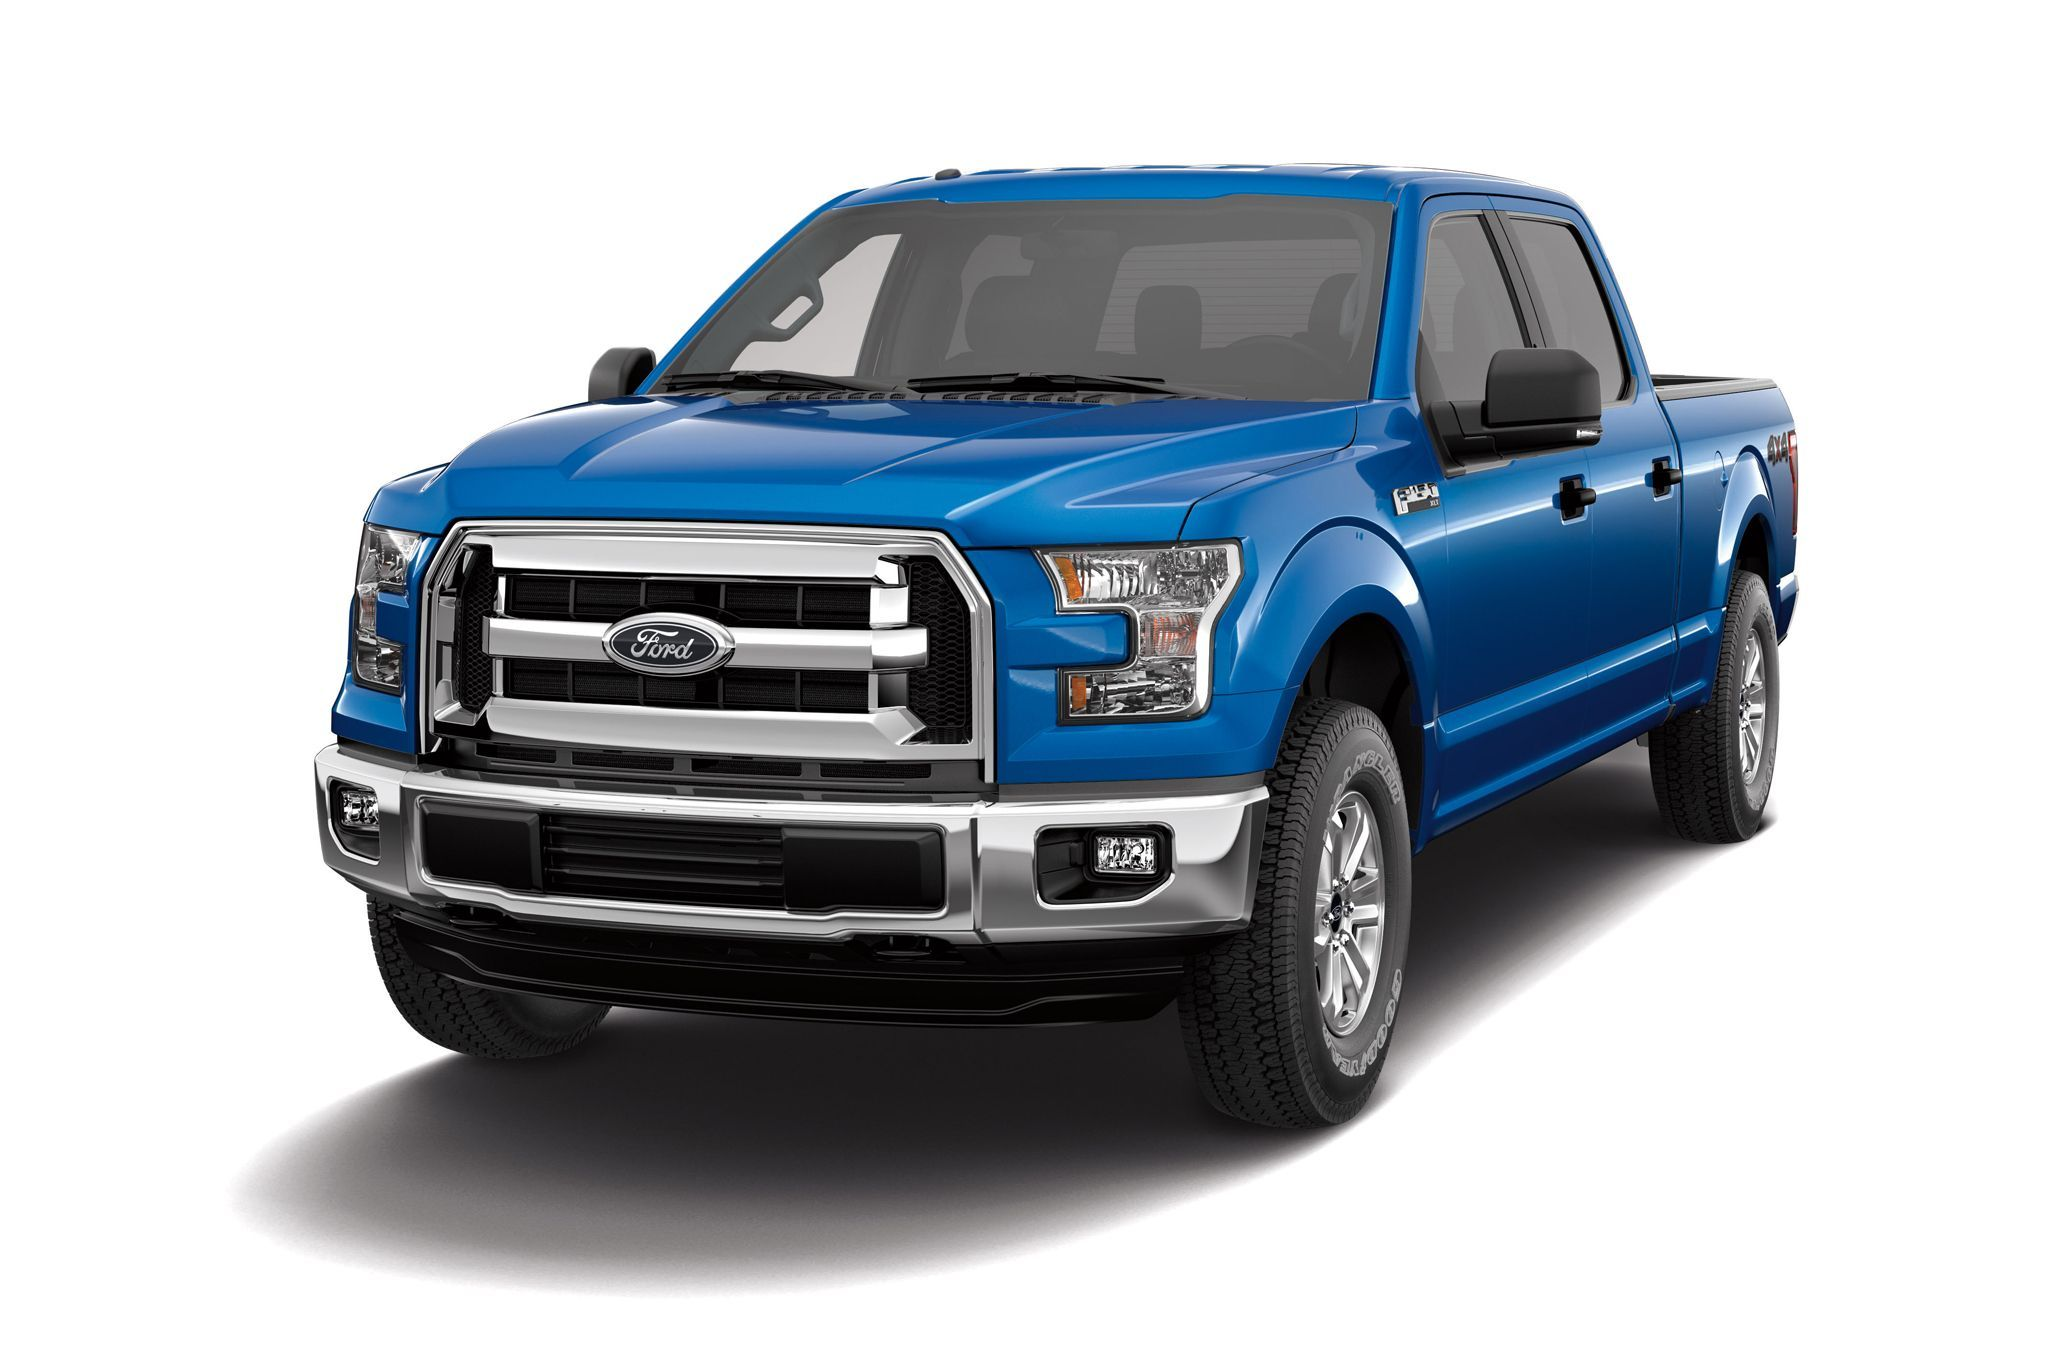 2015 Ford F 150 Xlt Front View Ford F150 Pickup Trucks Ford